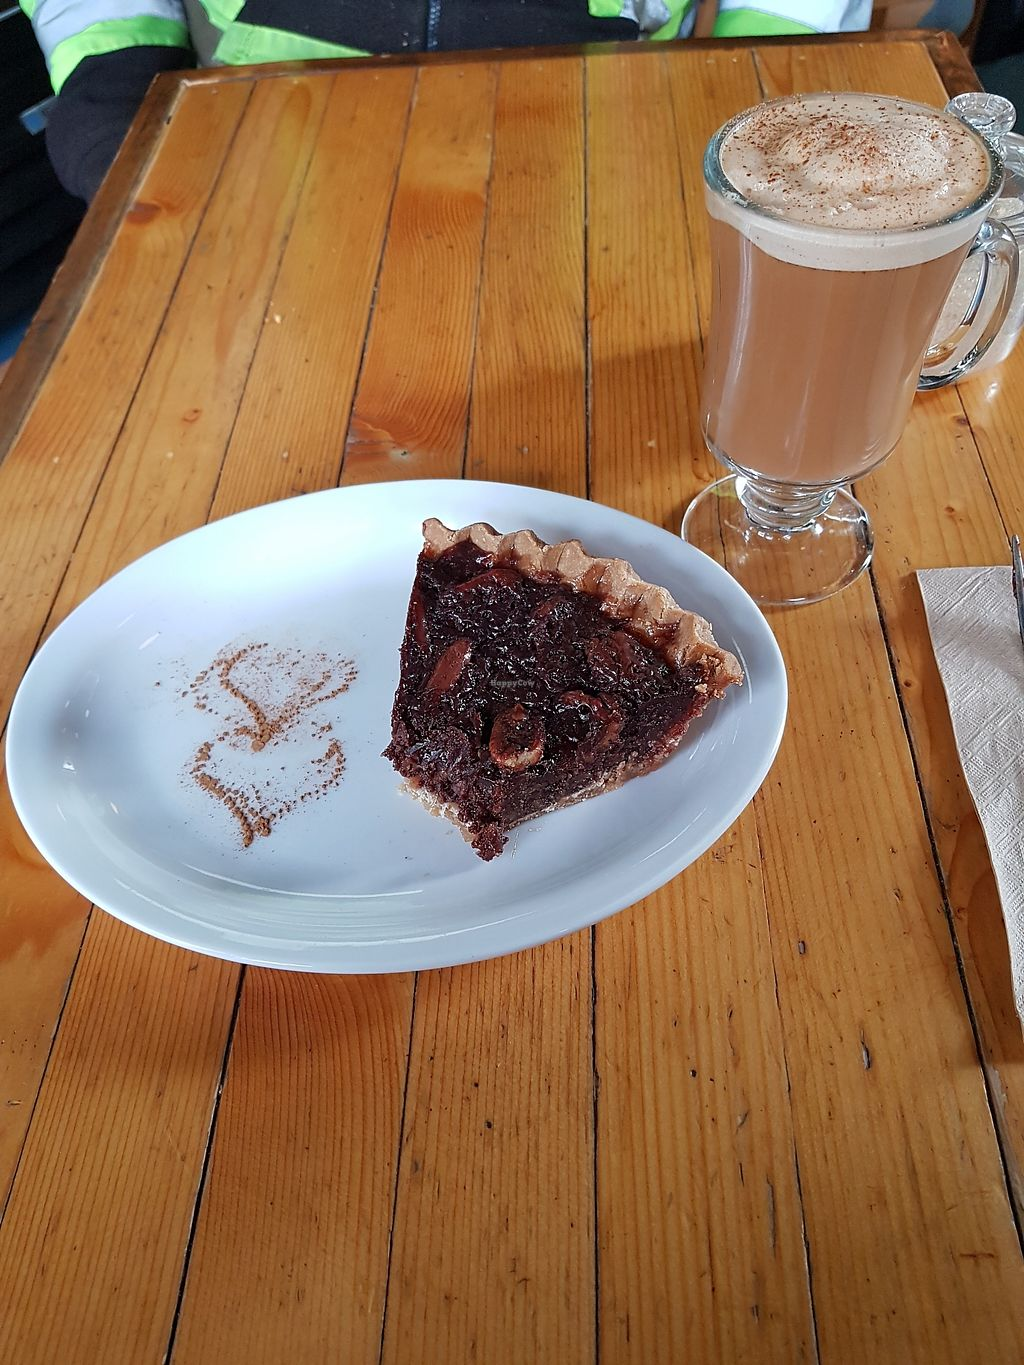 """Photo of Aphrodite Cafe and Pie Shop  by <a href=""""/members/profile/NoodleButt"""">NoodleButt</a> <br/>Vegan and gluten free chocolate pecan pie with house made chai tea with almond milk <br/> March 21, 2018  - <a href='/contact/abuse/image/17157/373535'>Report</a>"""